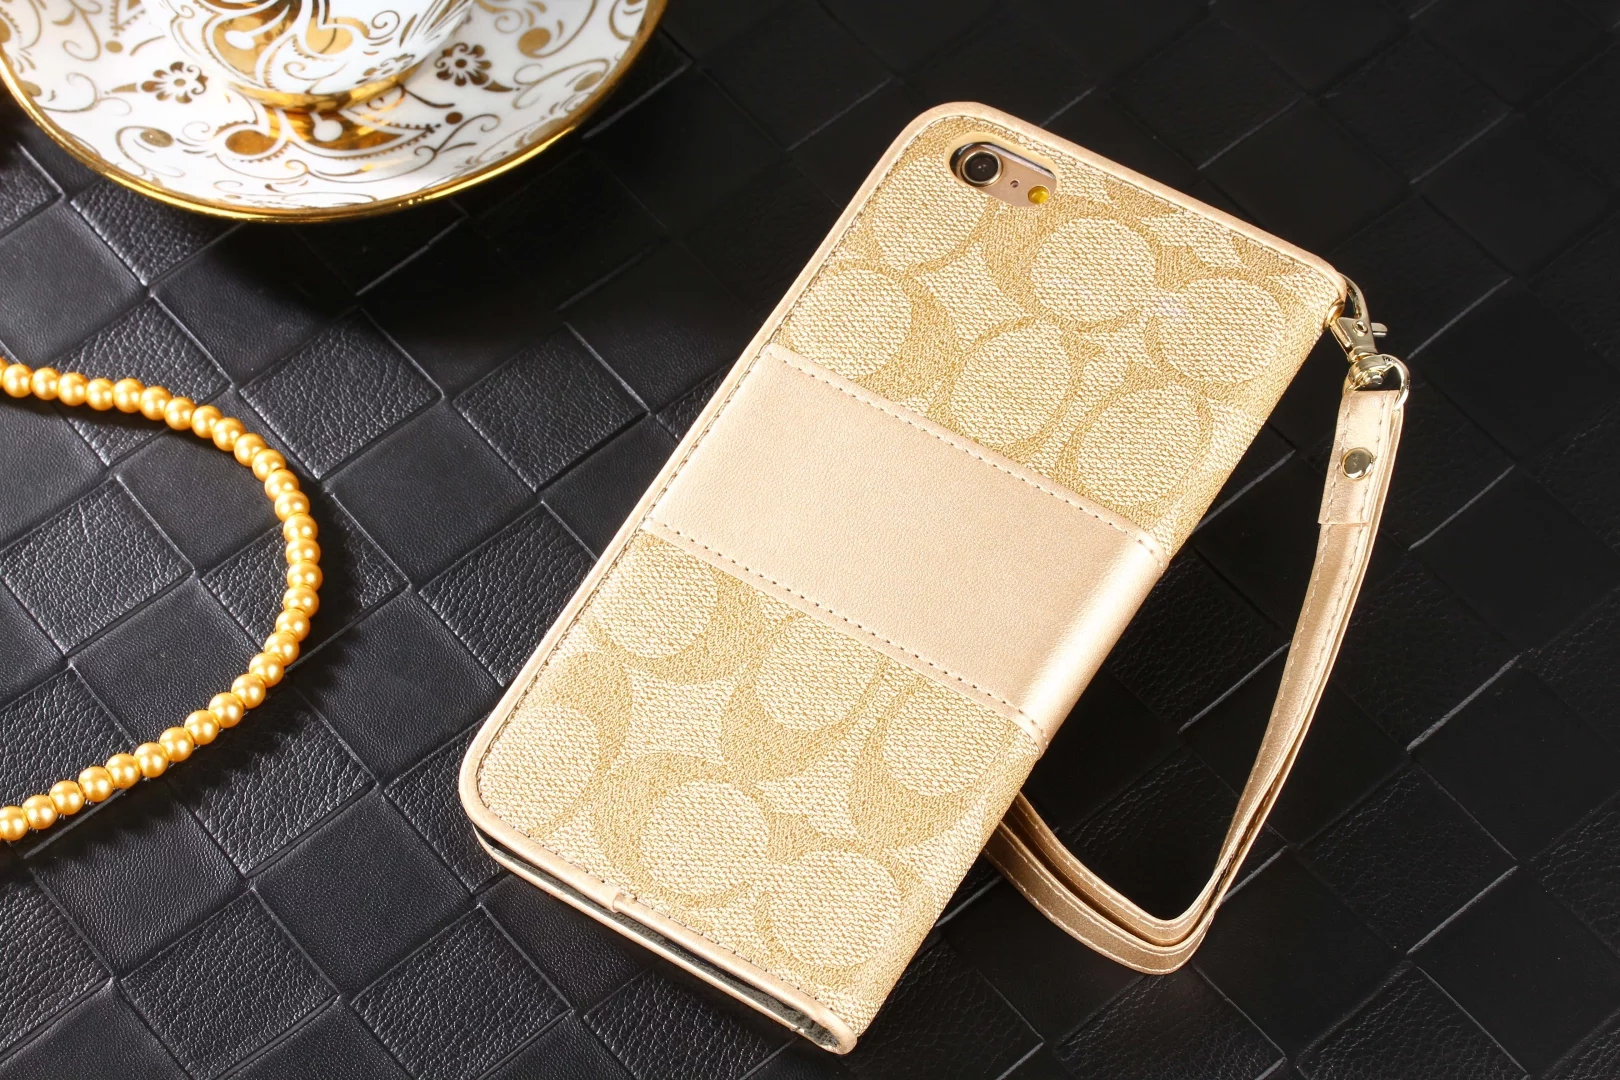 iphone 7 best case great iphone 7 cases fashion iphone7 case clear iphone case cell phone case custom 7 case iphone 7 sticker case iphone case images iphone 7 news today